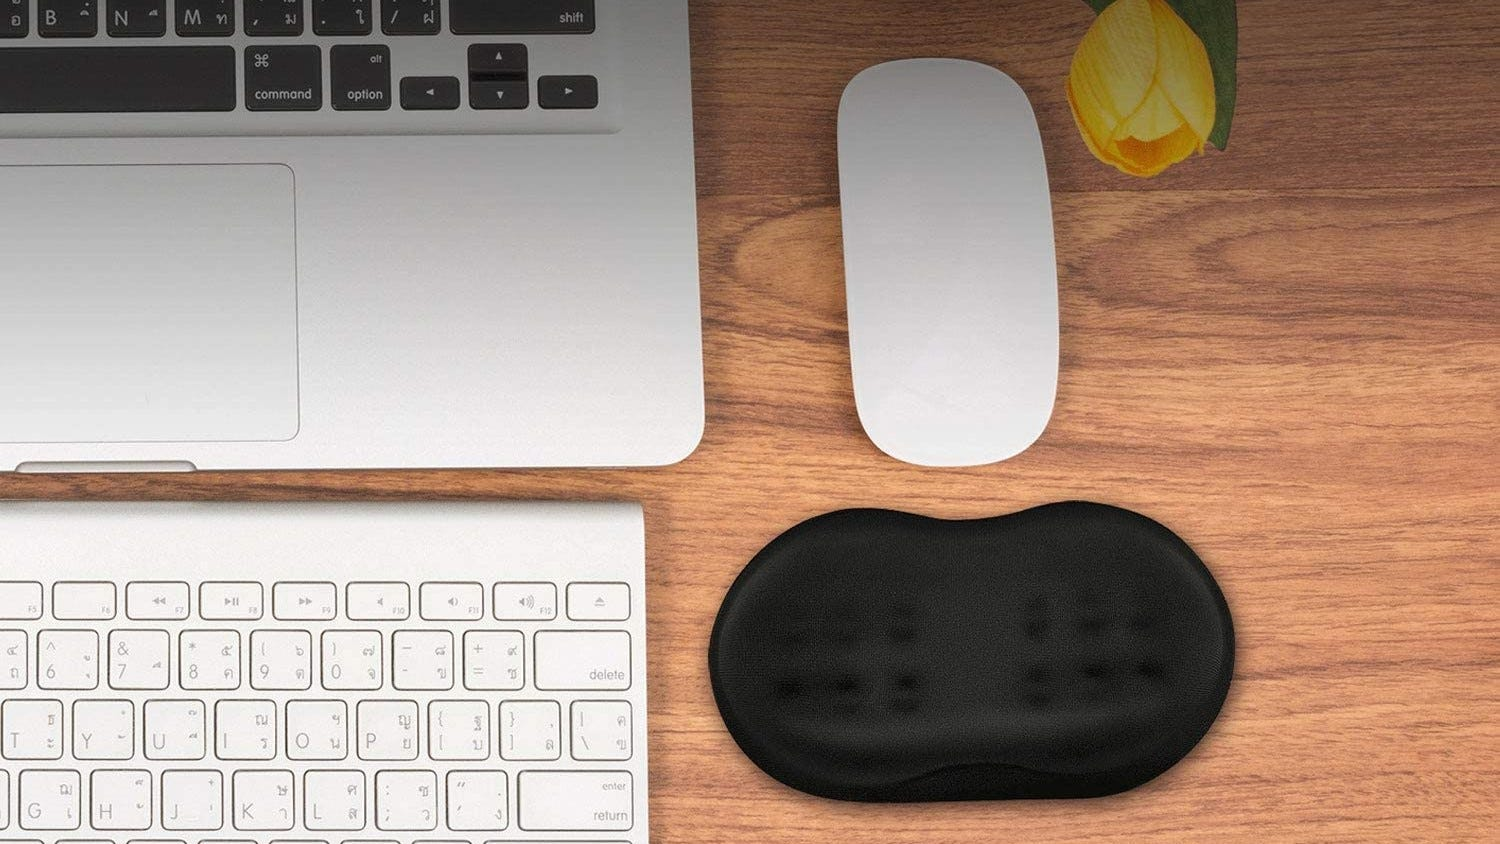 The Vankey wrist pad on a desk next to a computer.